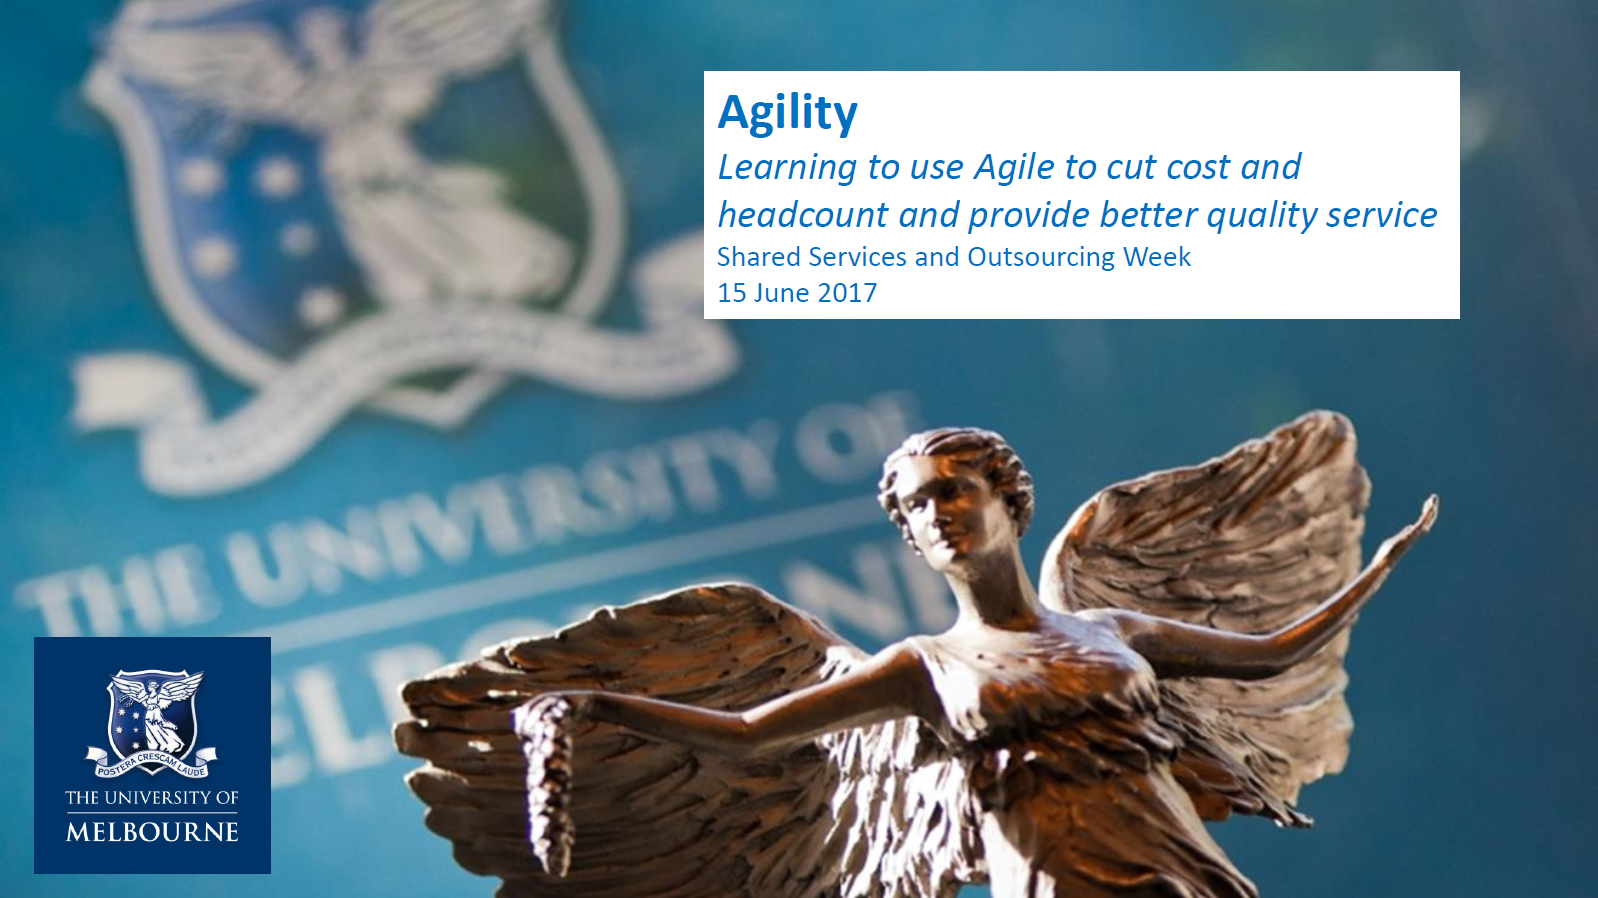 Learning to Use Agile to Cut Cost and Headcount and Provide Better Quality Service